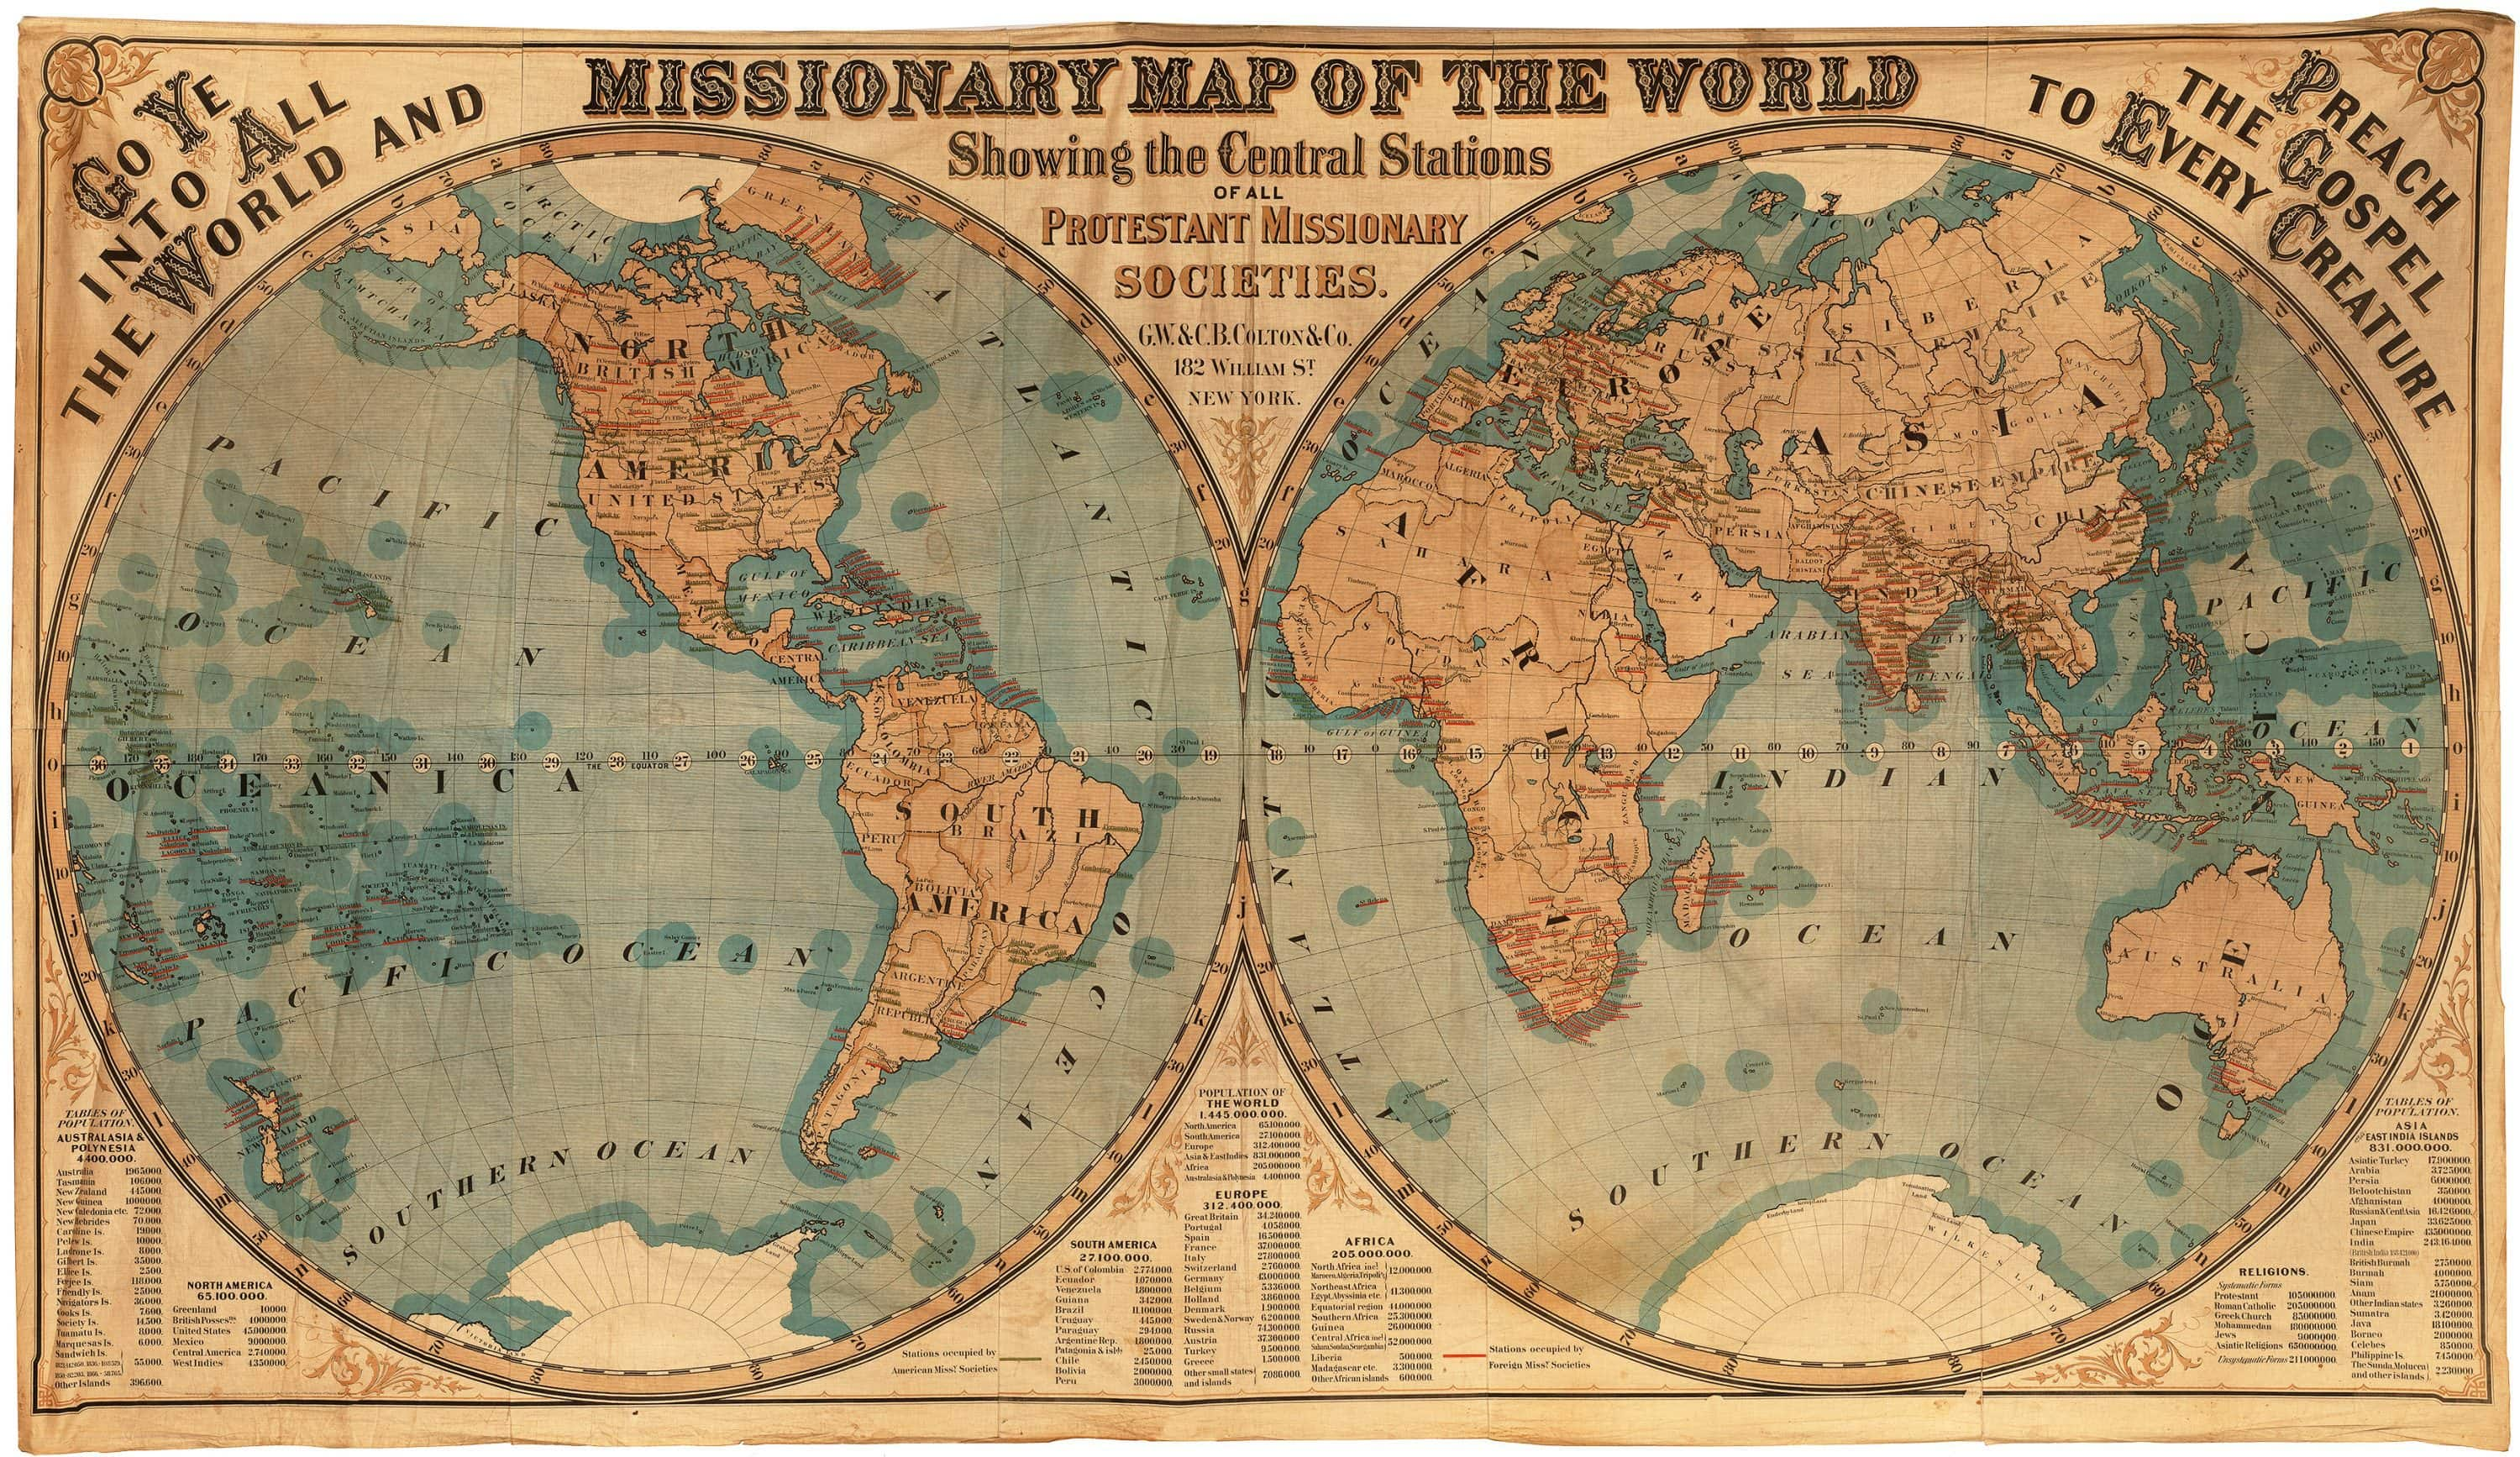 Mammoth 1878 Missionary Map of the World on cloth - Rare & Antique Maps